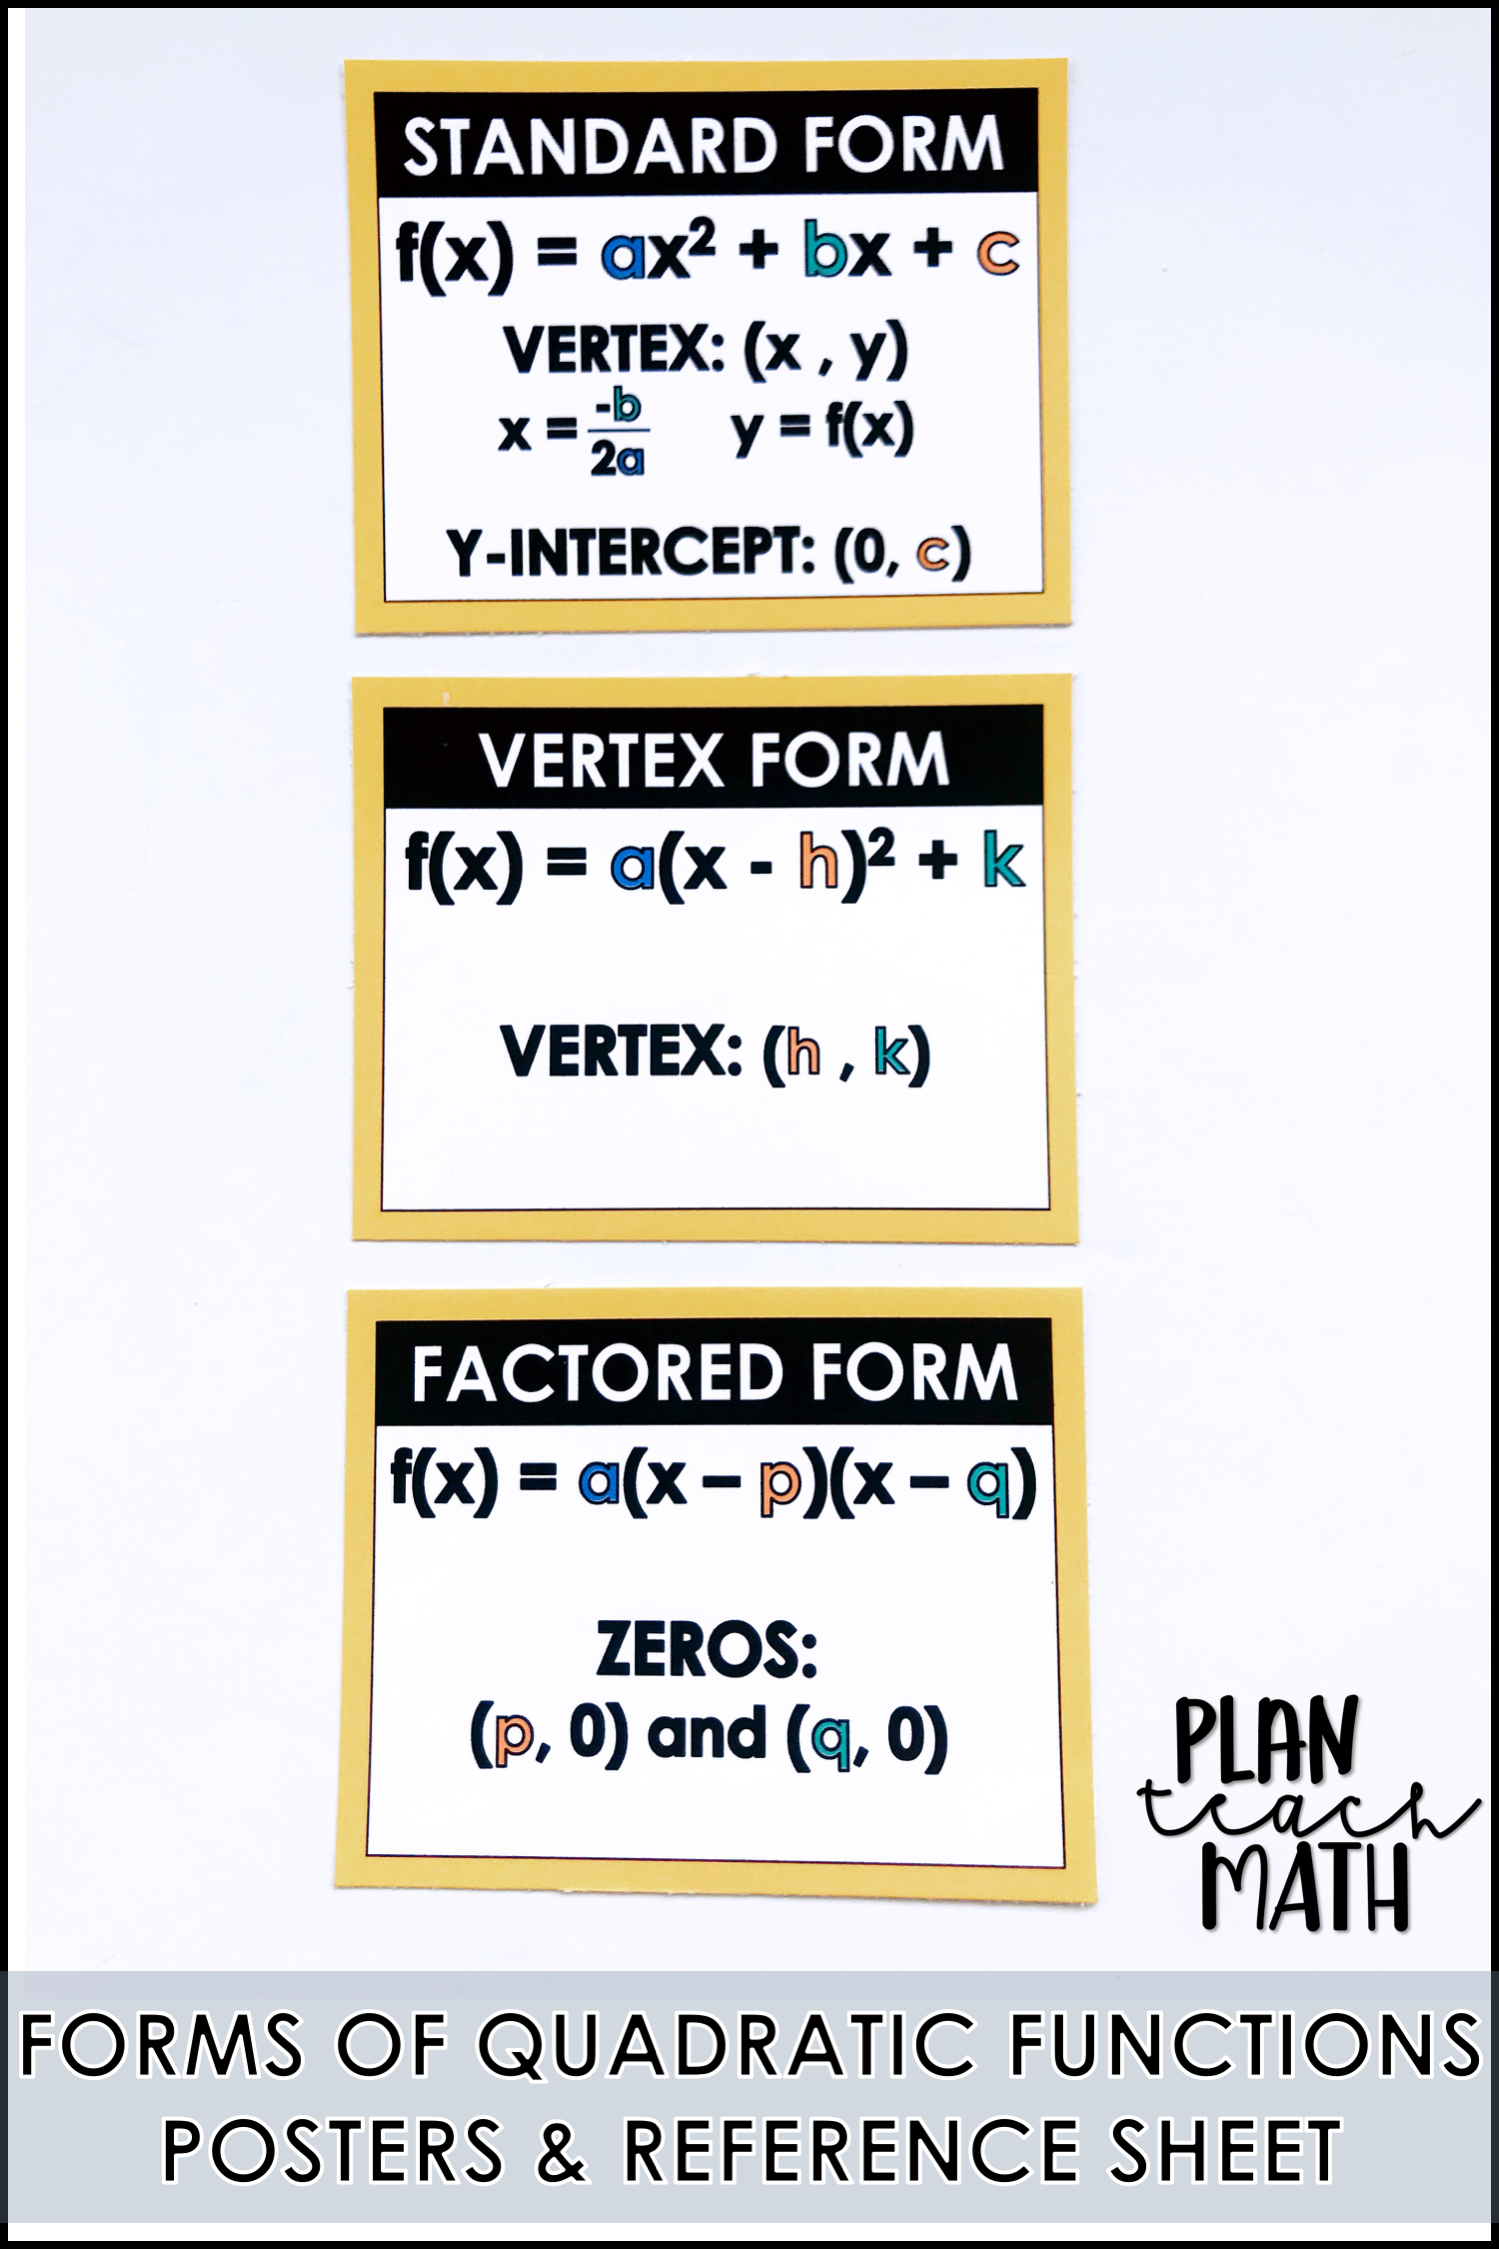 standard form to factored form This poster set provides visual forms of quadratic functions